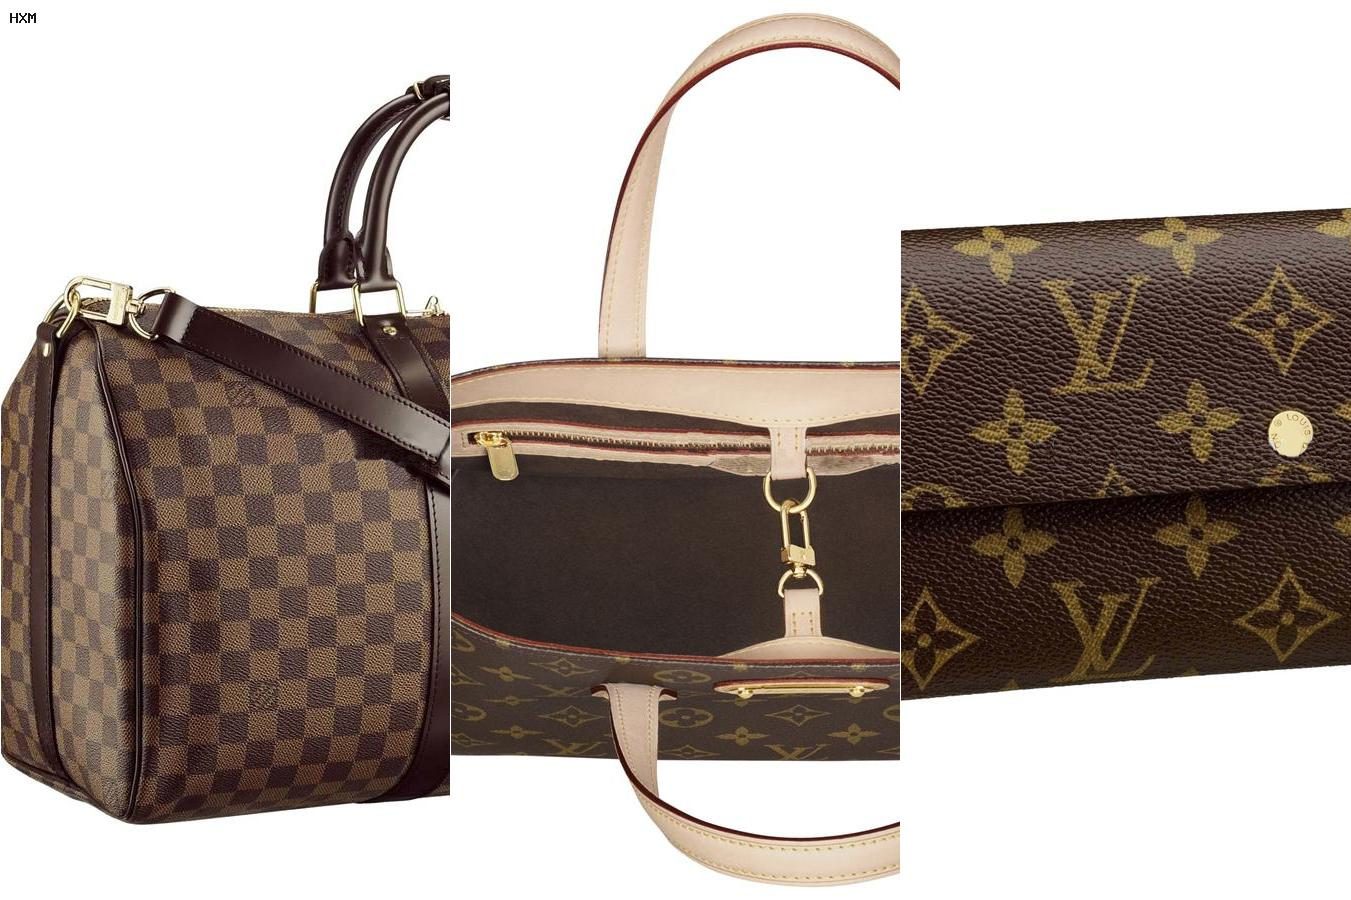 tracolla louis vuitton per bauletto